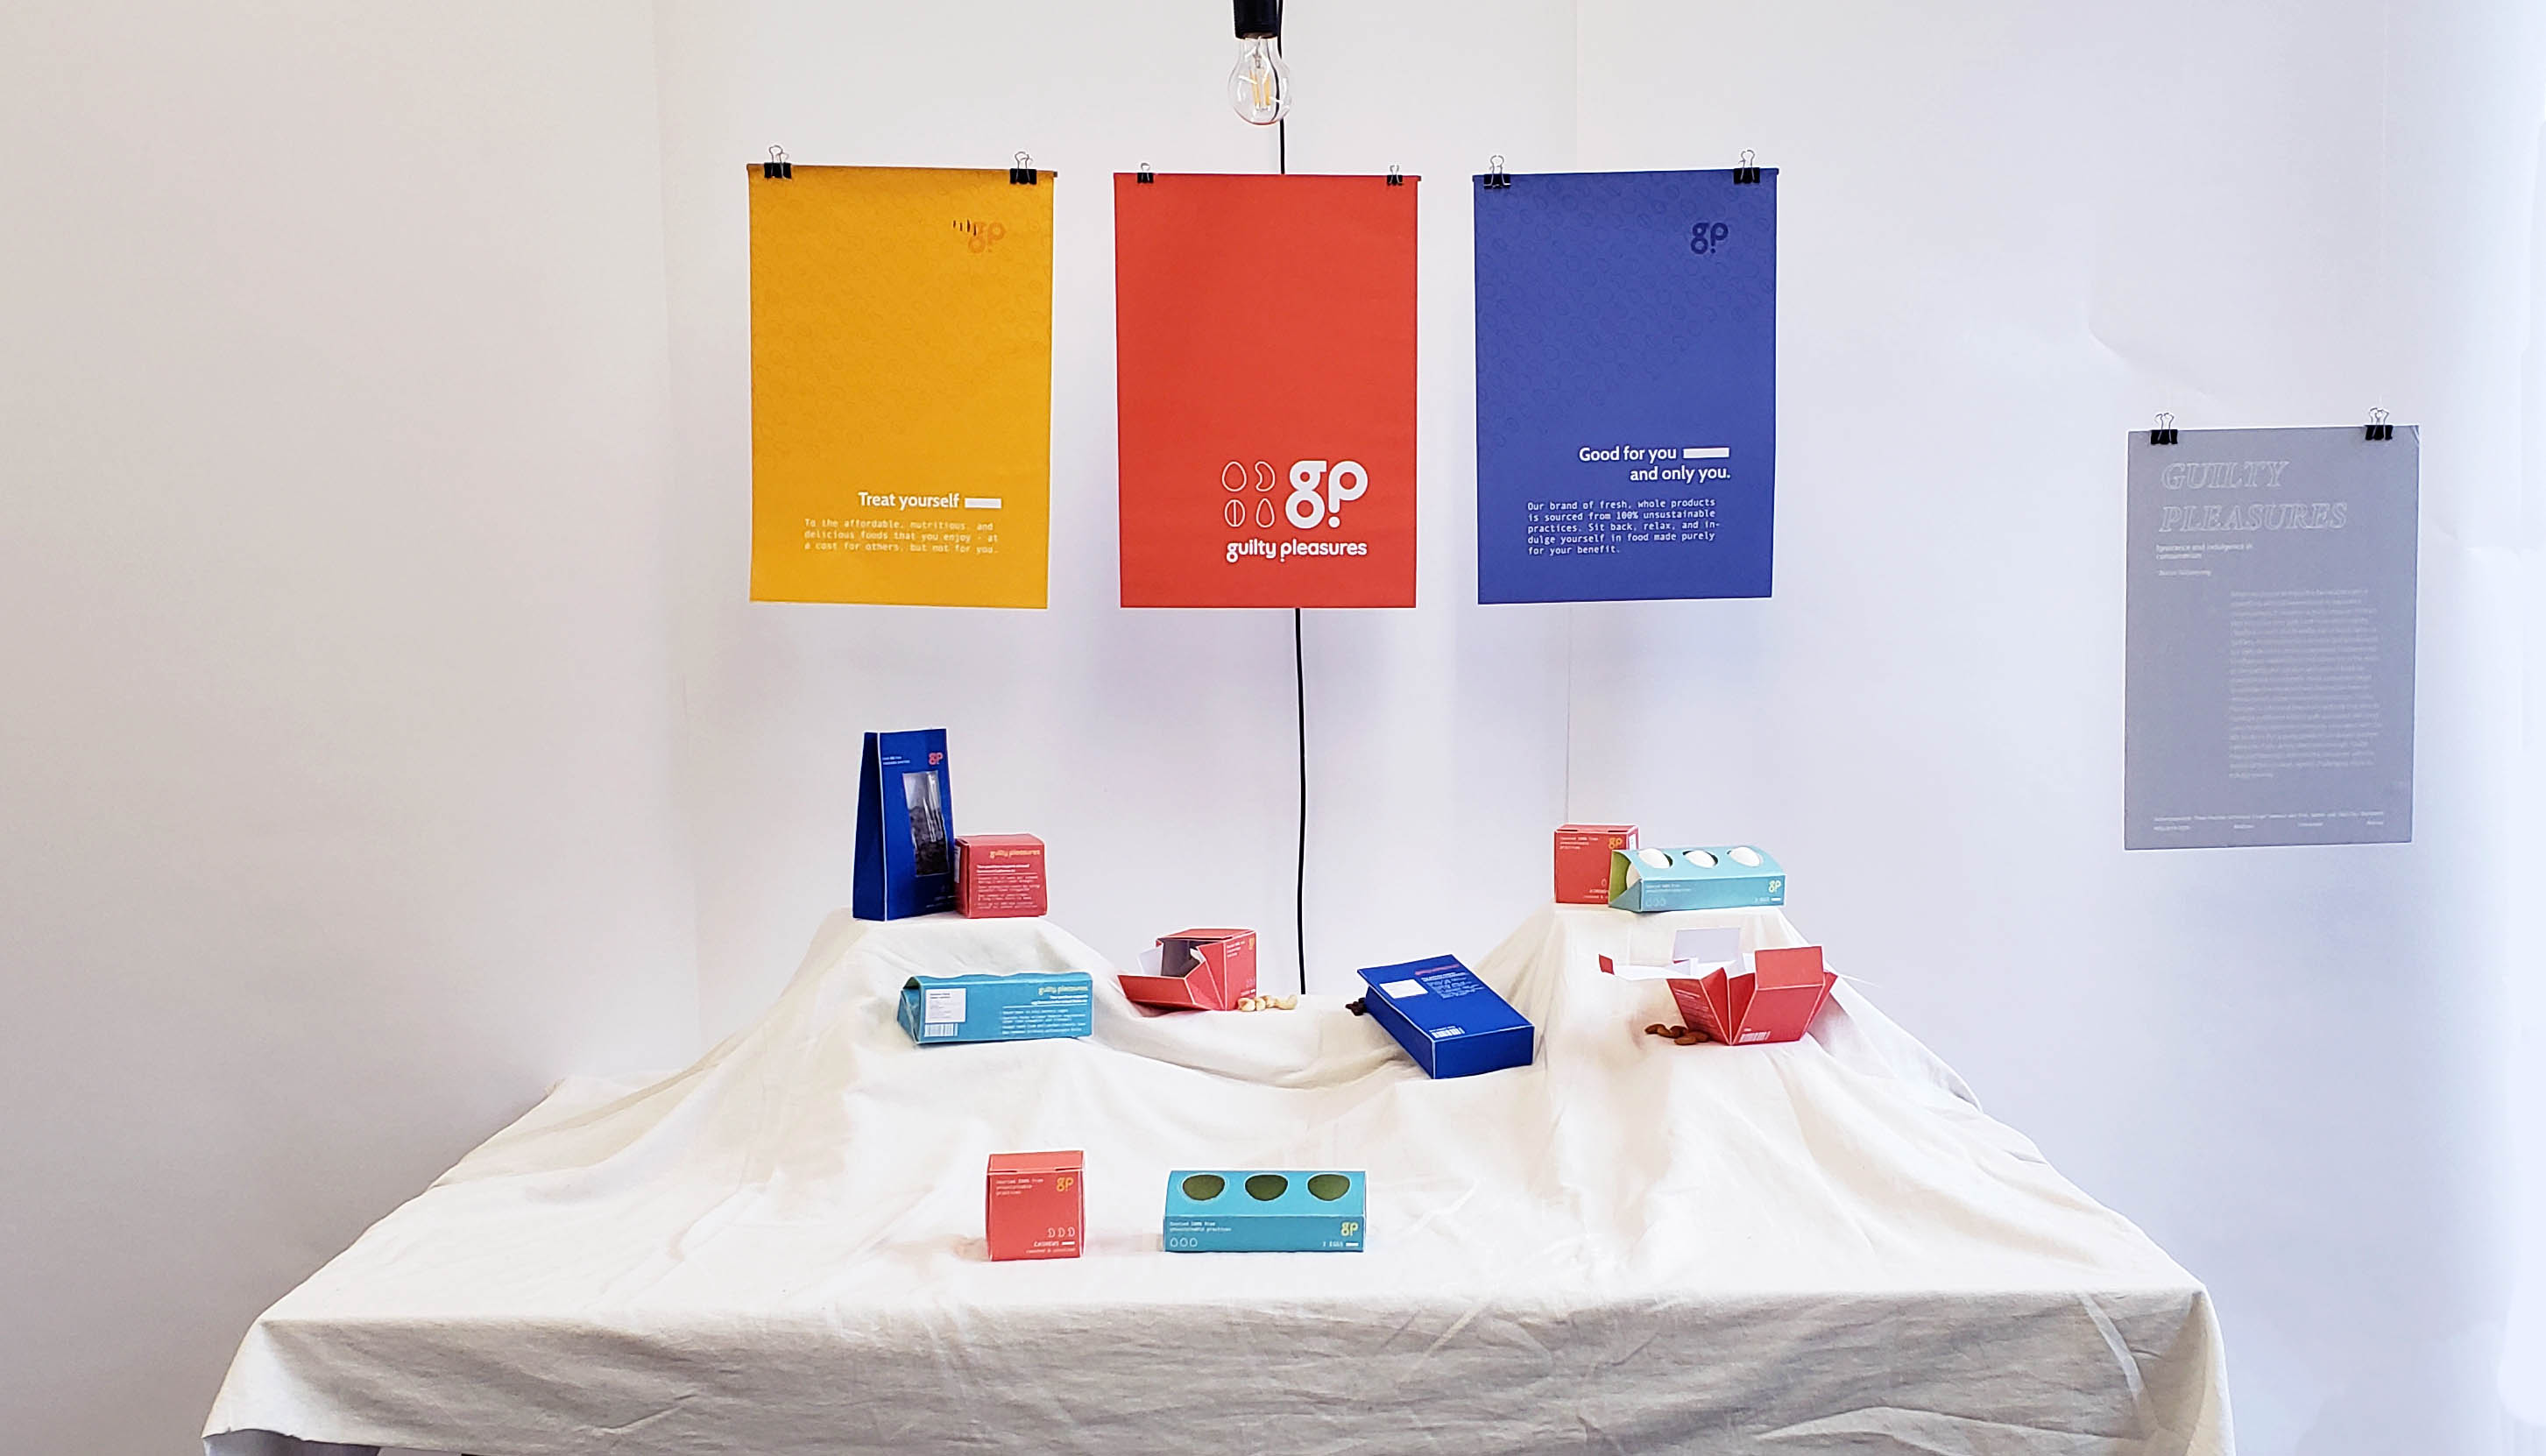 A table covered in white cloth with colourful packages displayed on top. Three banners showing the brand logo hang above.